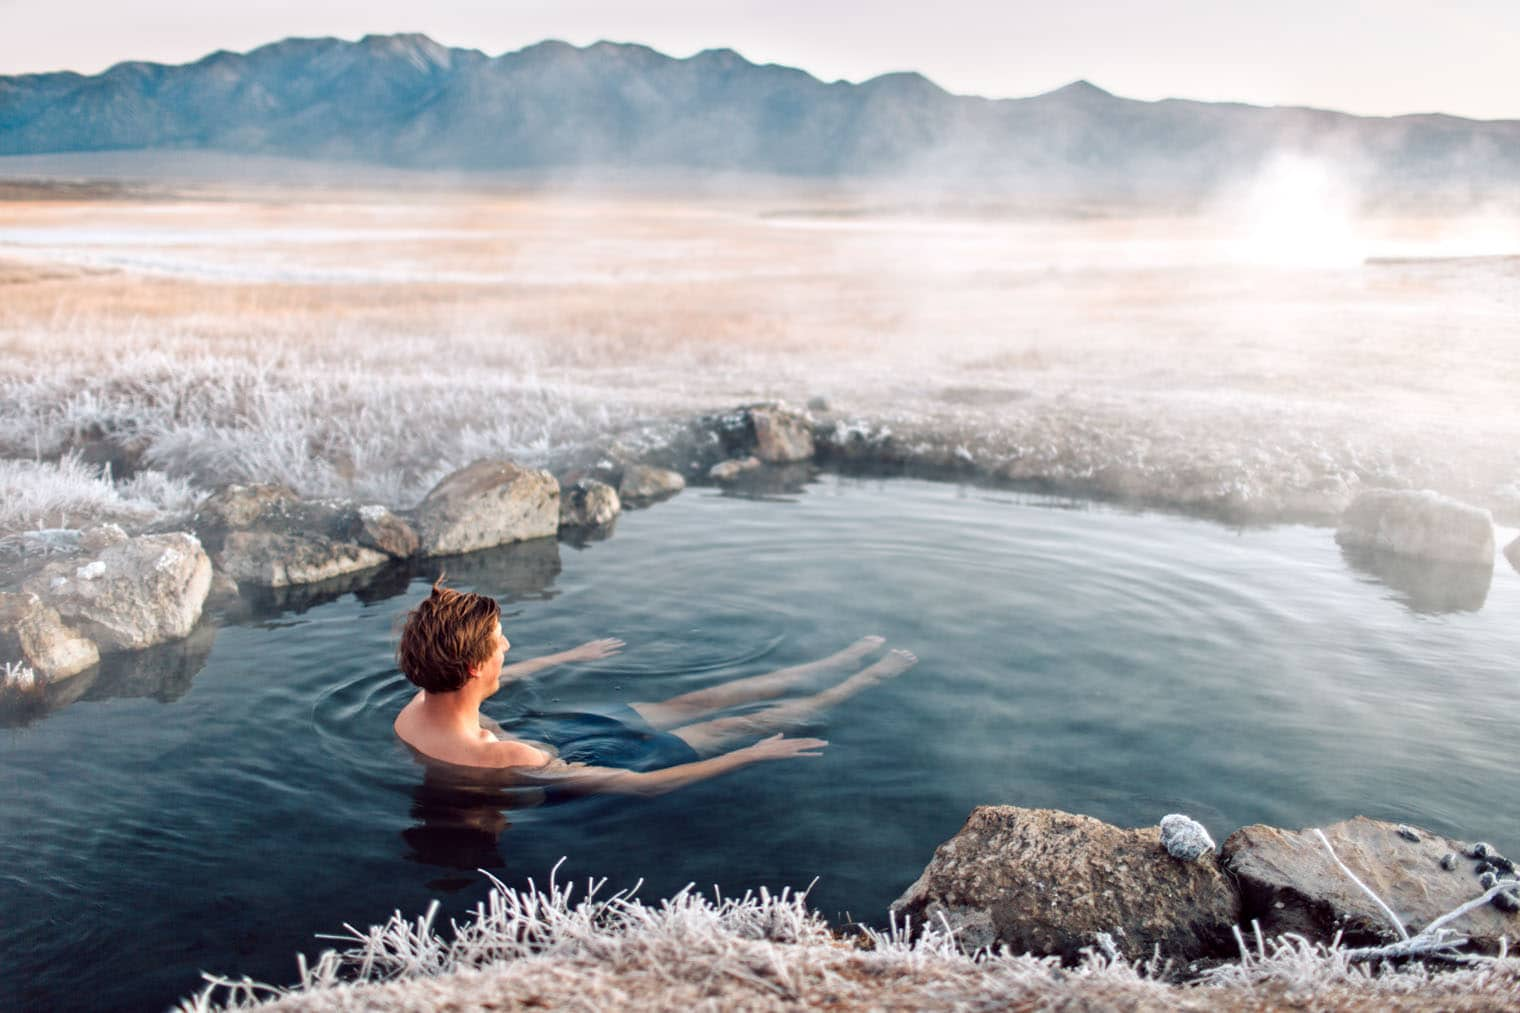 Michael sitting in a hot spring